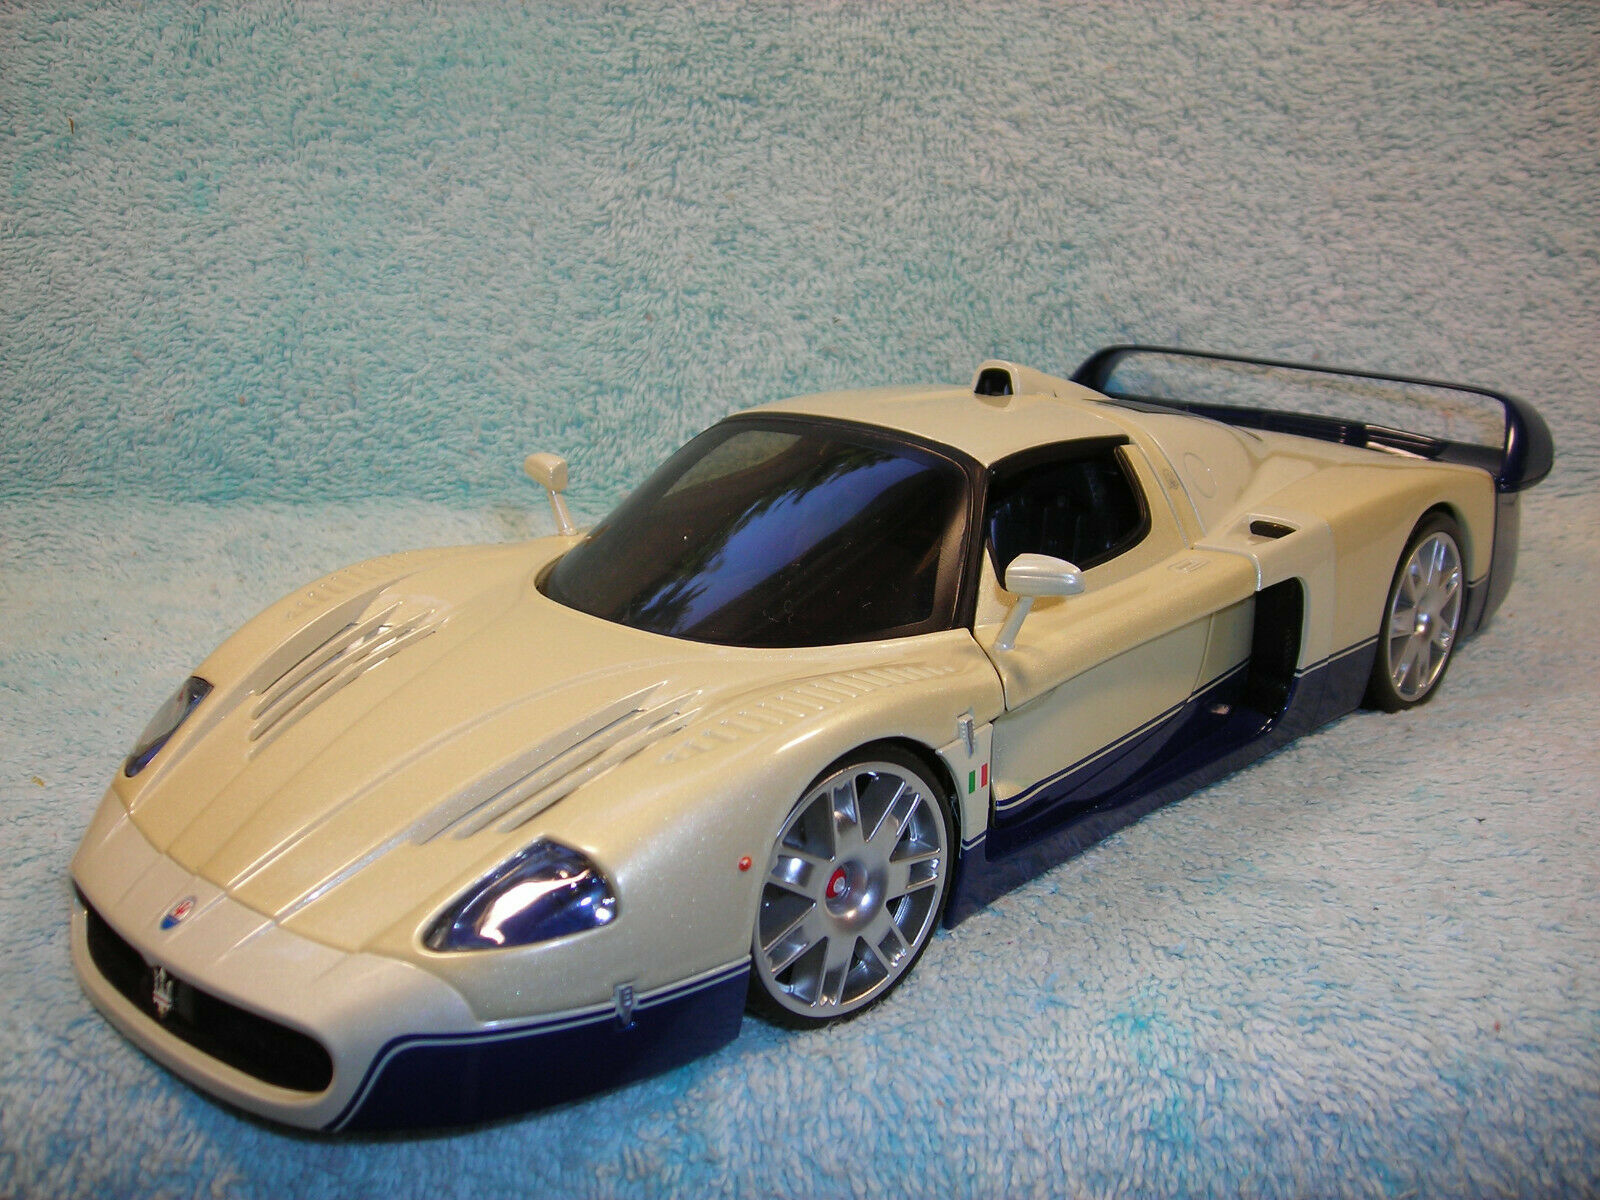 1 18 SCALE DIECAST MASERATI MC12 STREET VERSION IN PERIL Weiß Blau BY HOTWHEEL.